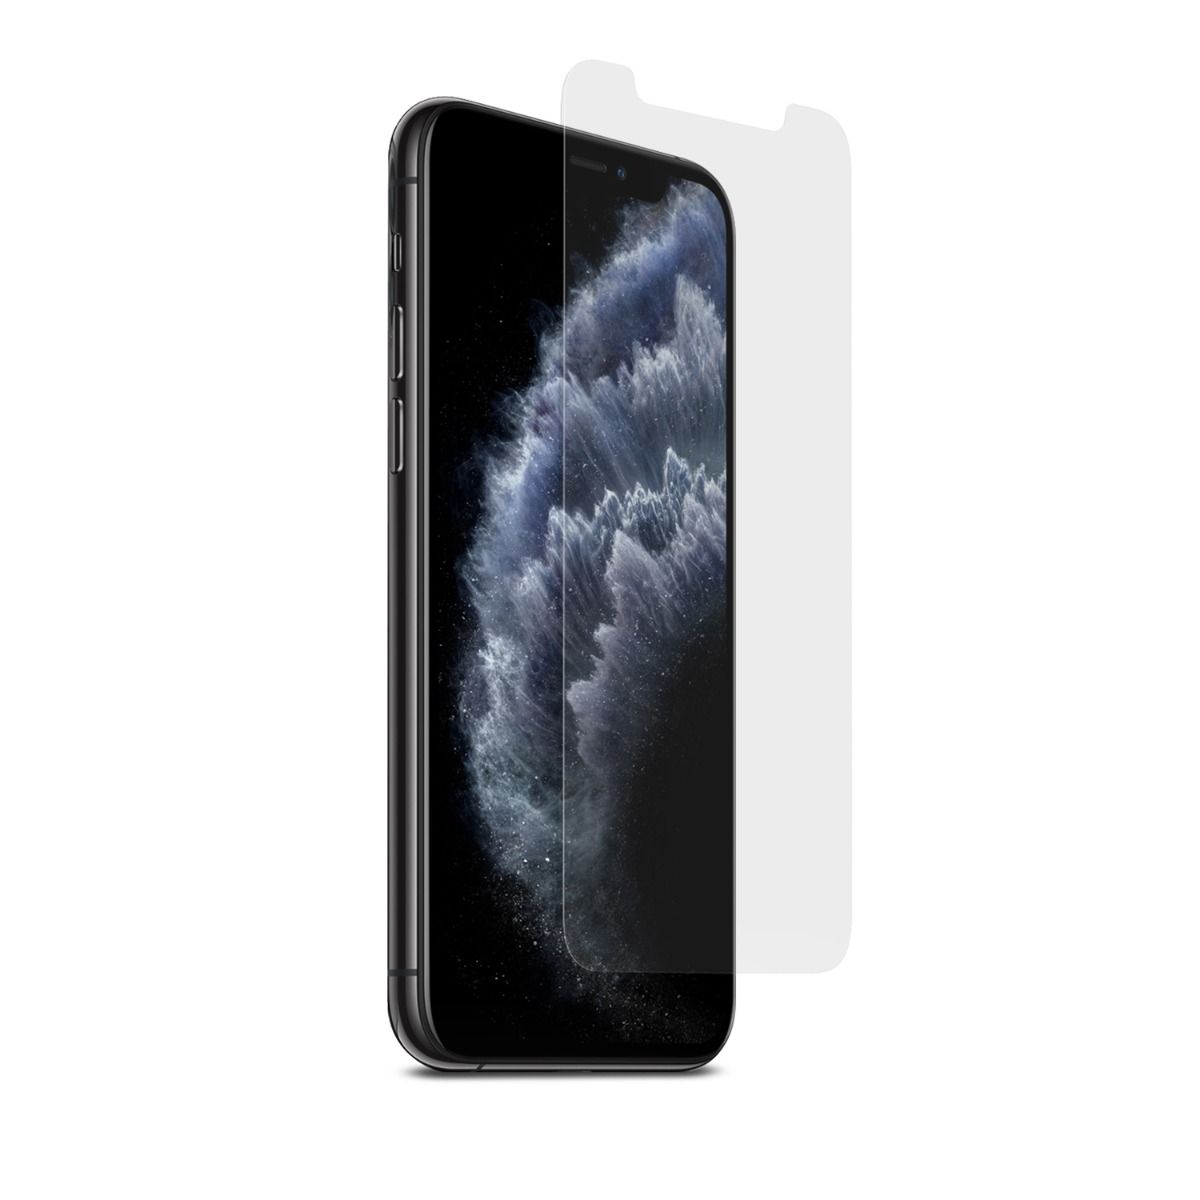 Apple iPhone 11 Pro Max High-Definition Glass Screen Protector (No Alignment Tray)